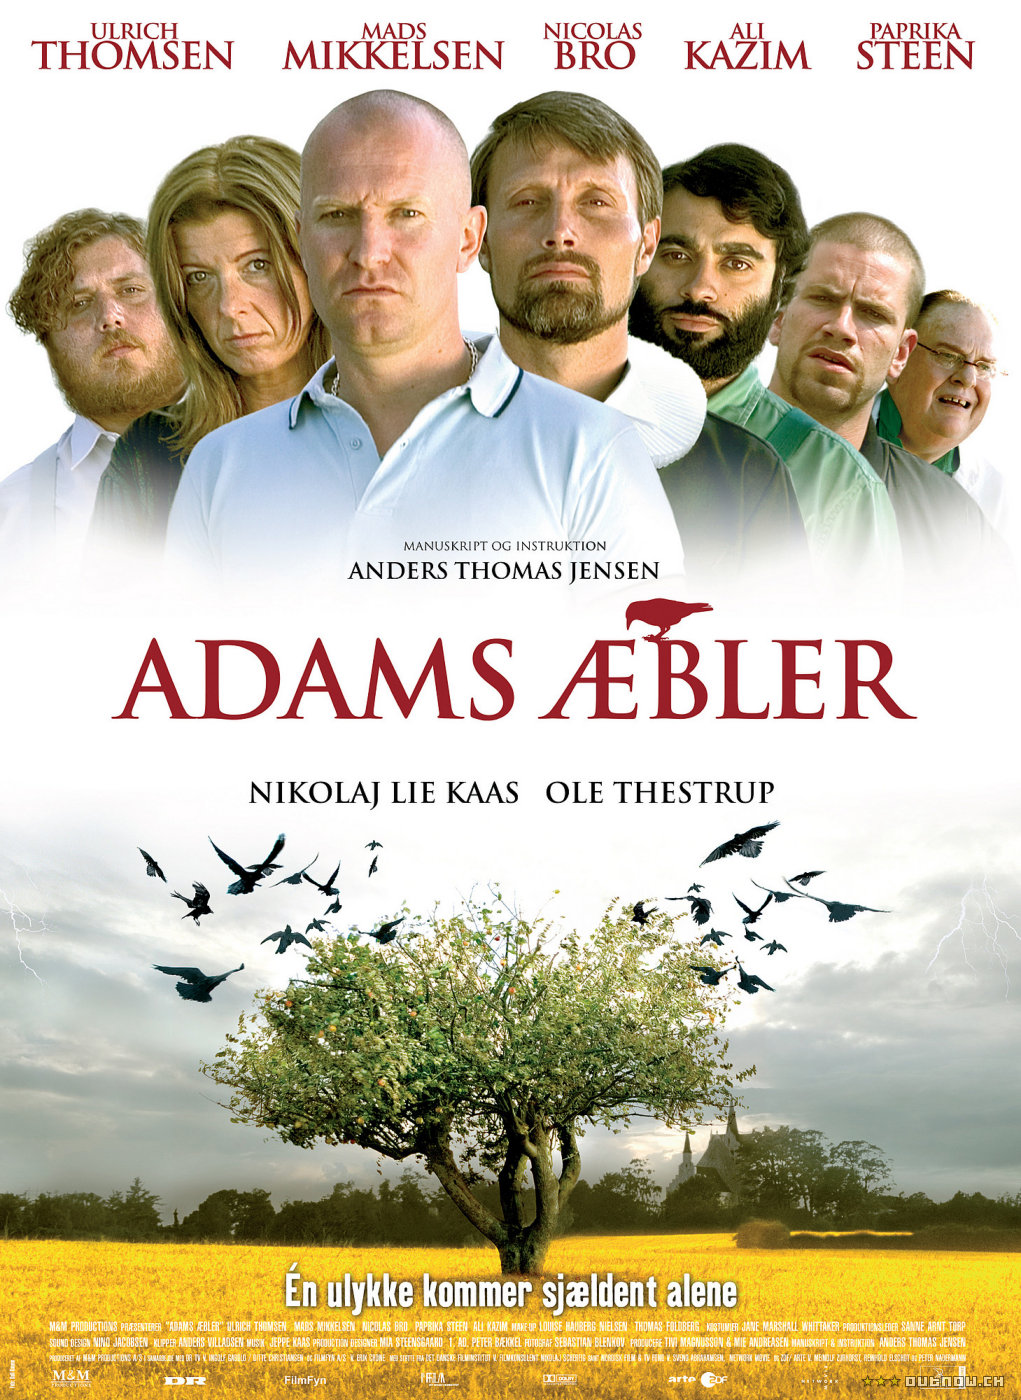 Adams Aebler